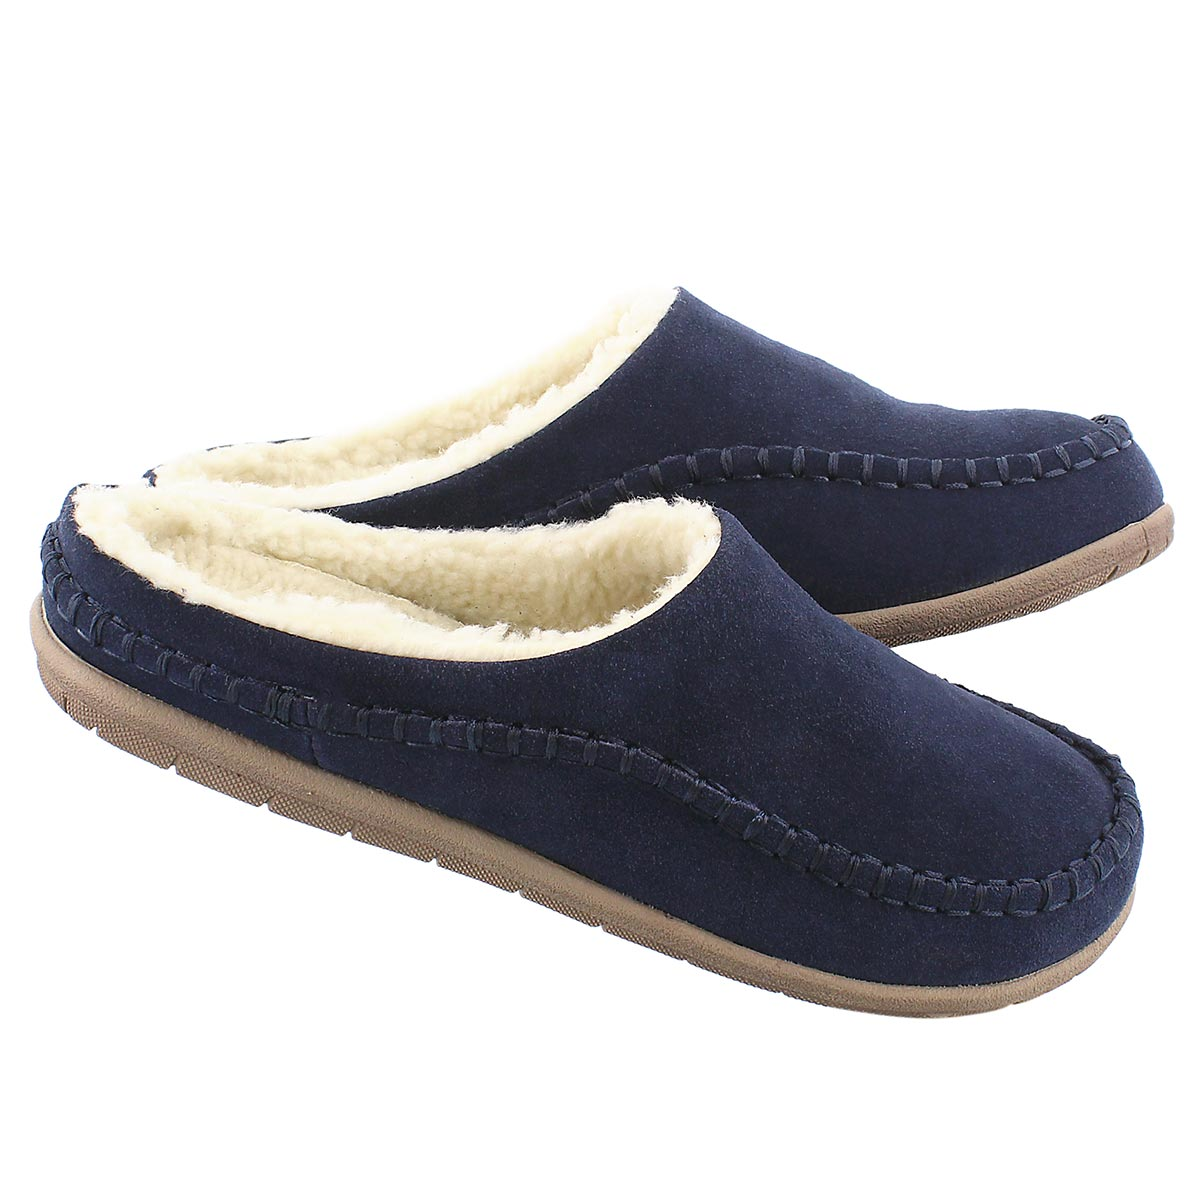 Mns Logan navy open back slipper